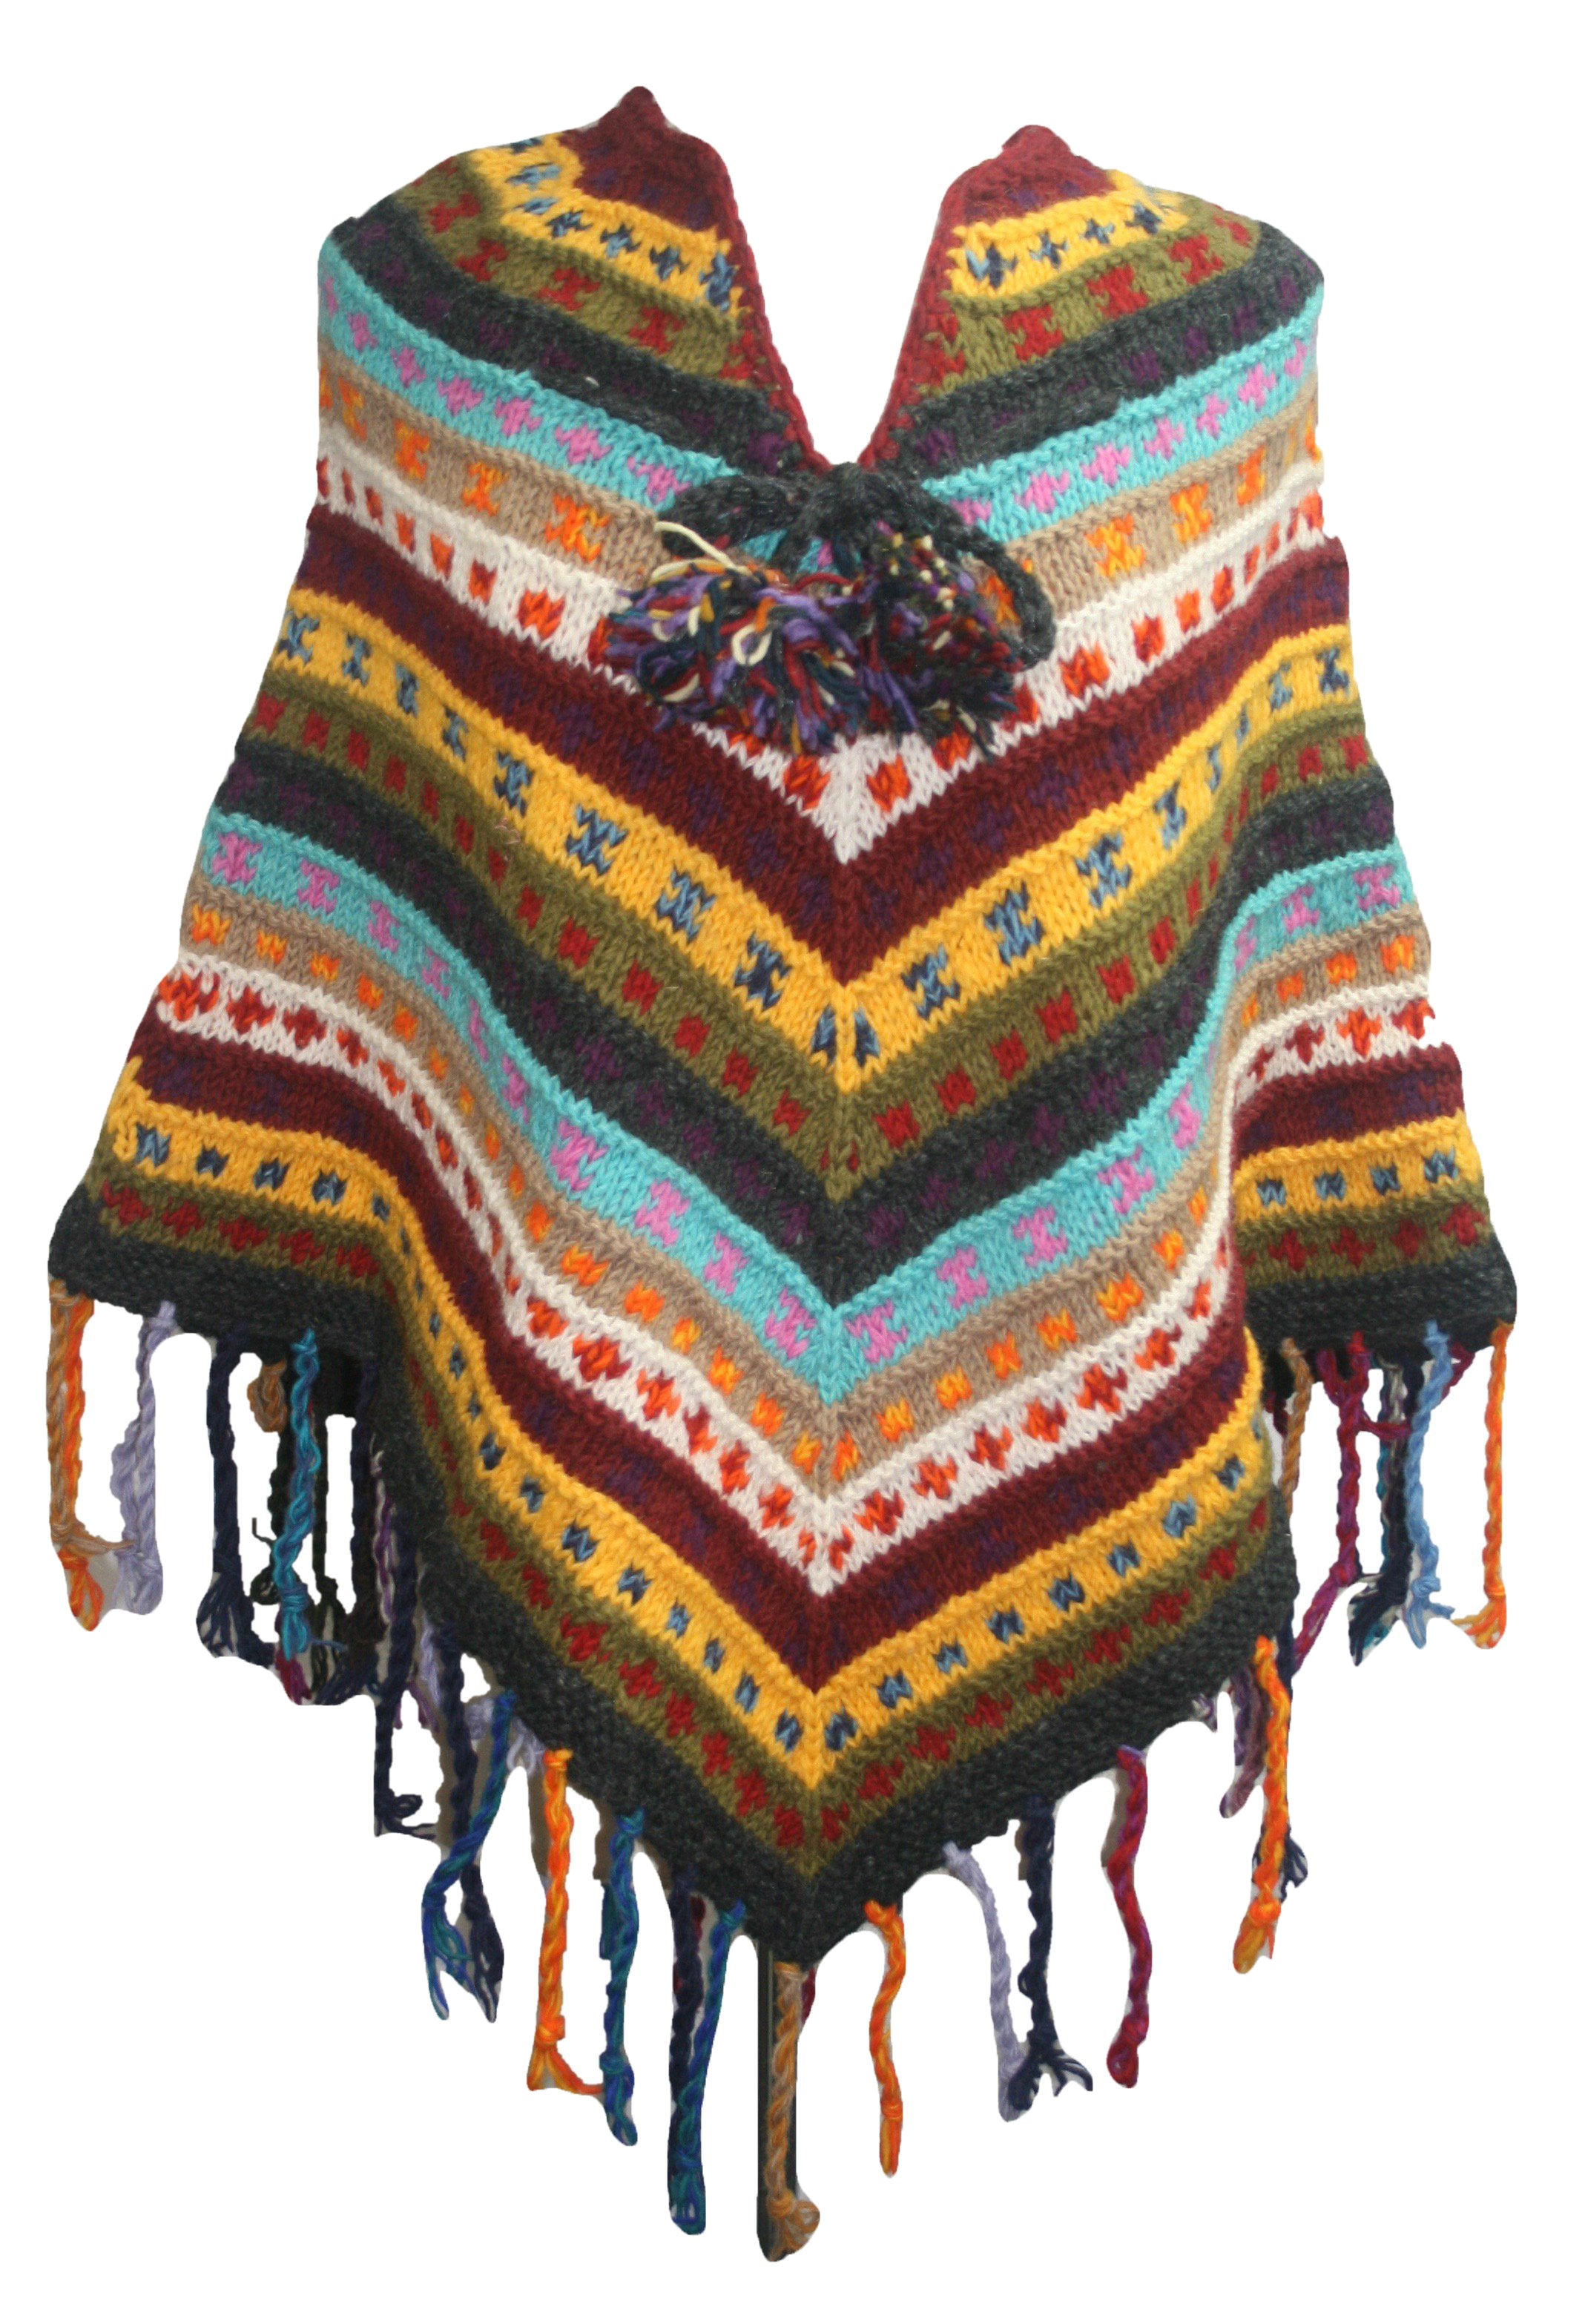 PN 200 Himalayan Thick Sheep Wool Hand Knitted Poncho - Agan Traders, PN 200 15